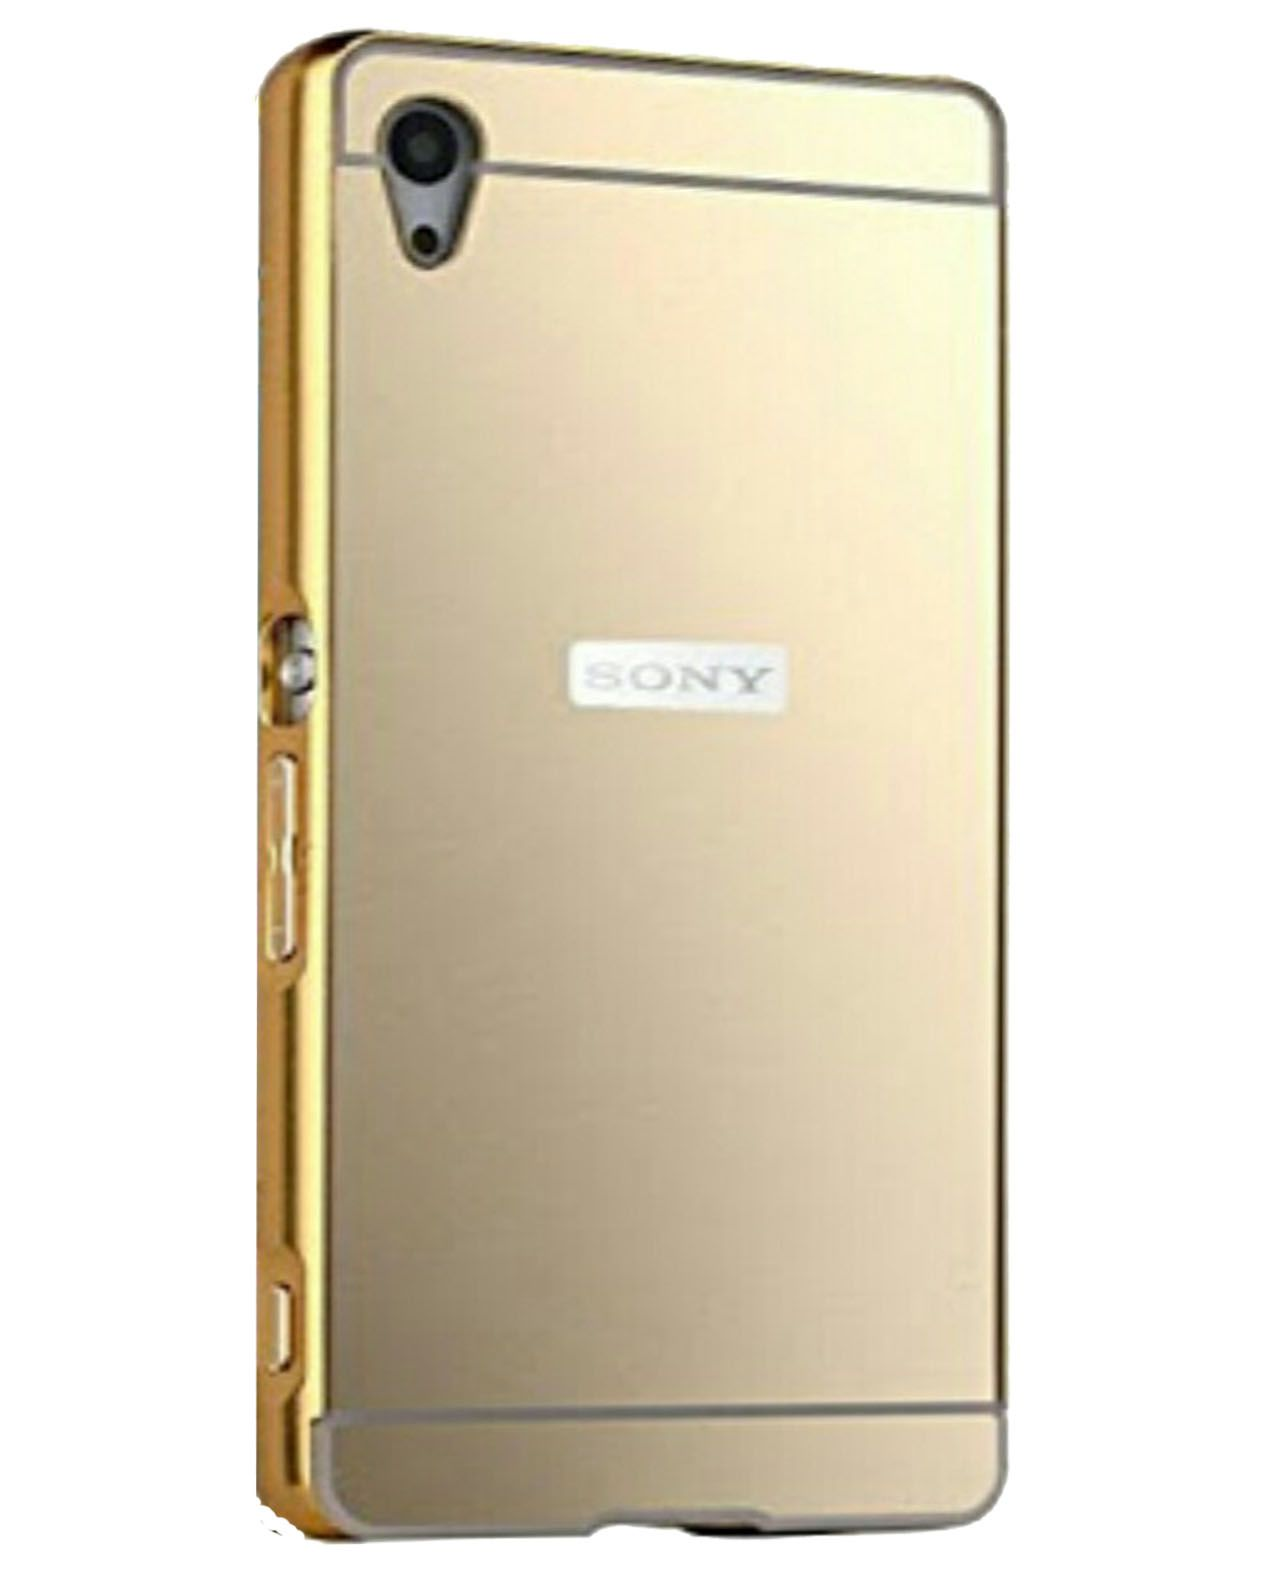 Sony Xperia Z2 Cover by Alike - Golden